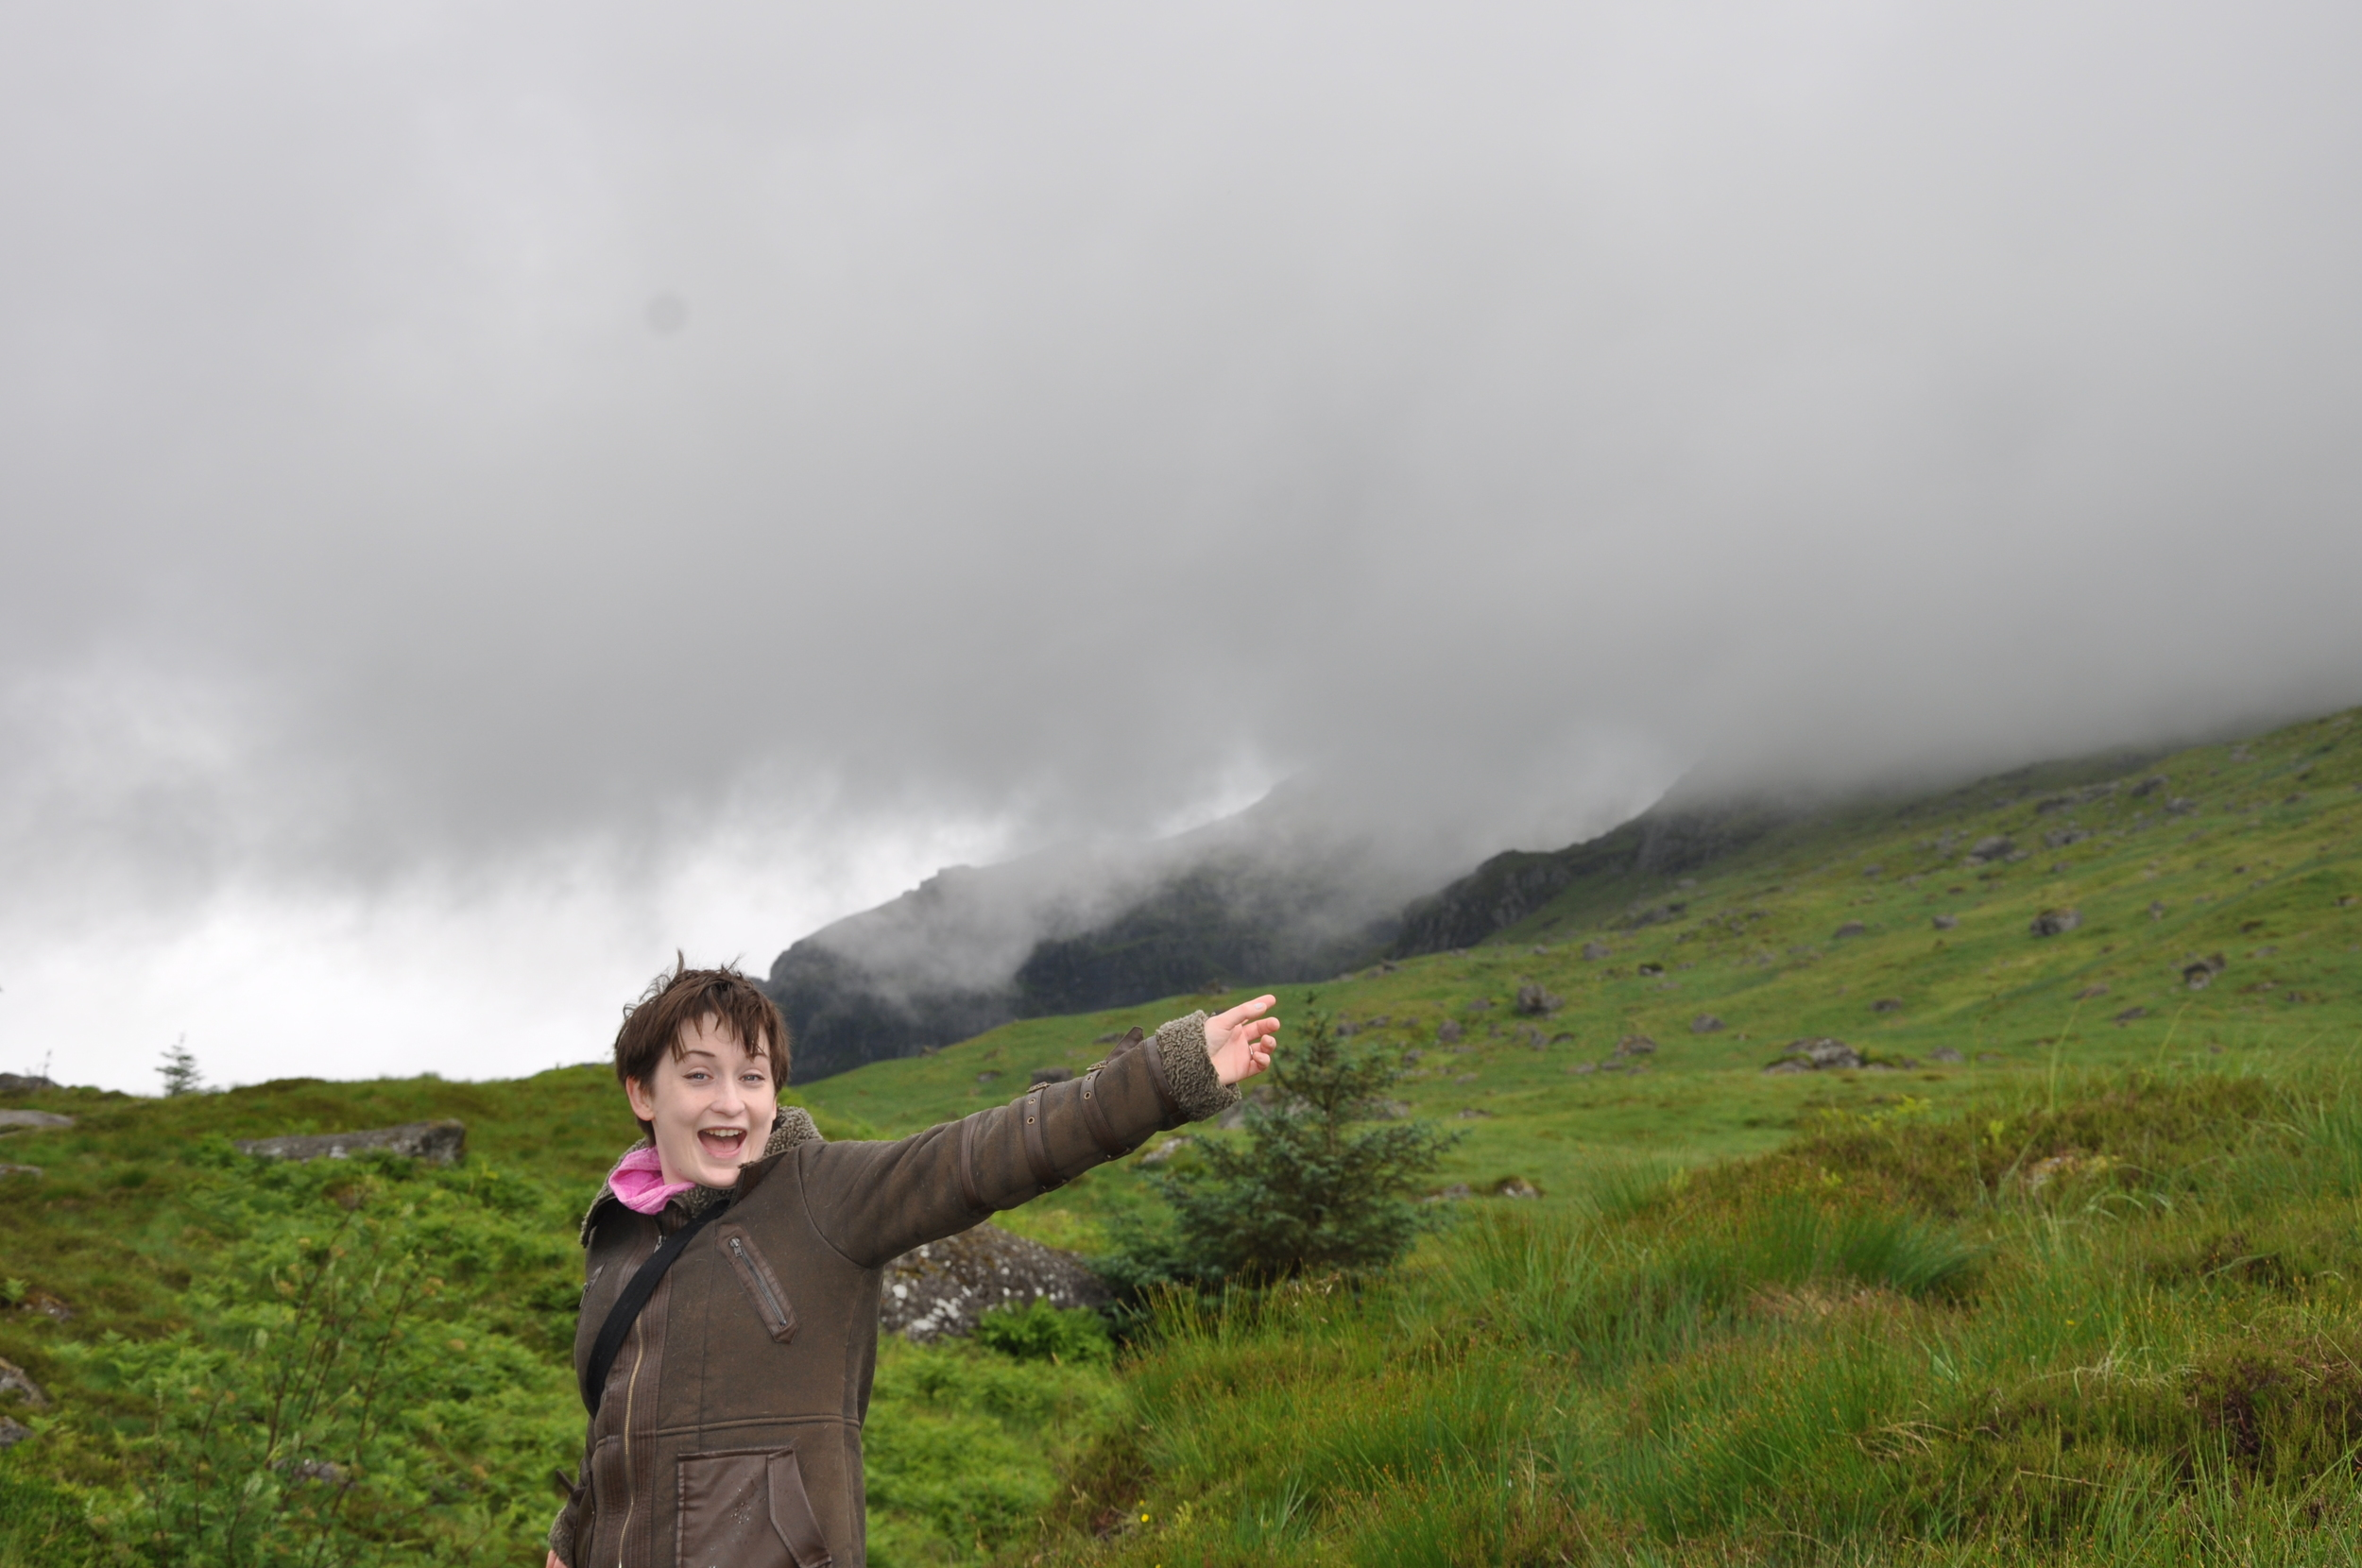 Lady pointing up hill in Scotland